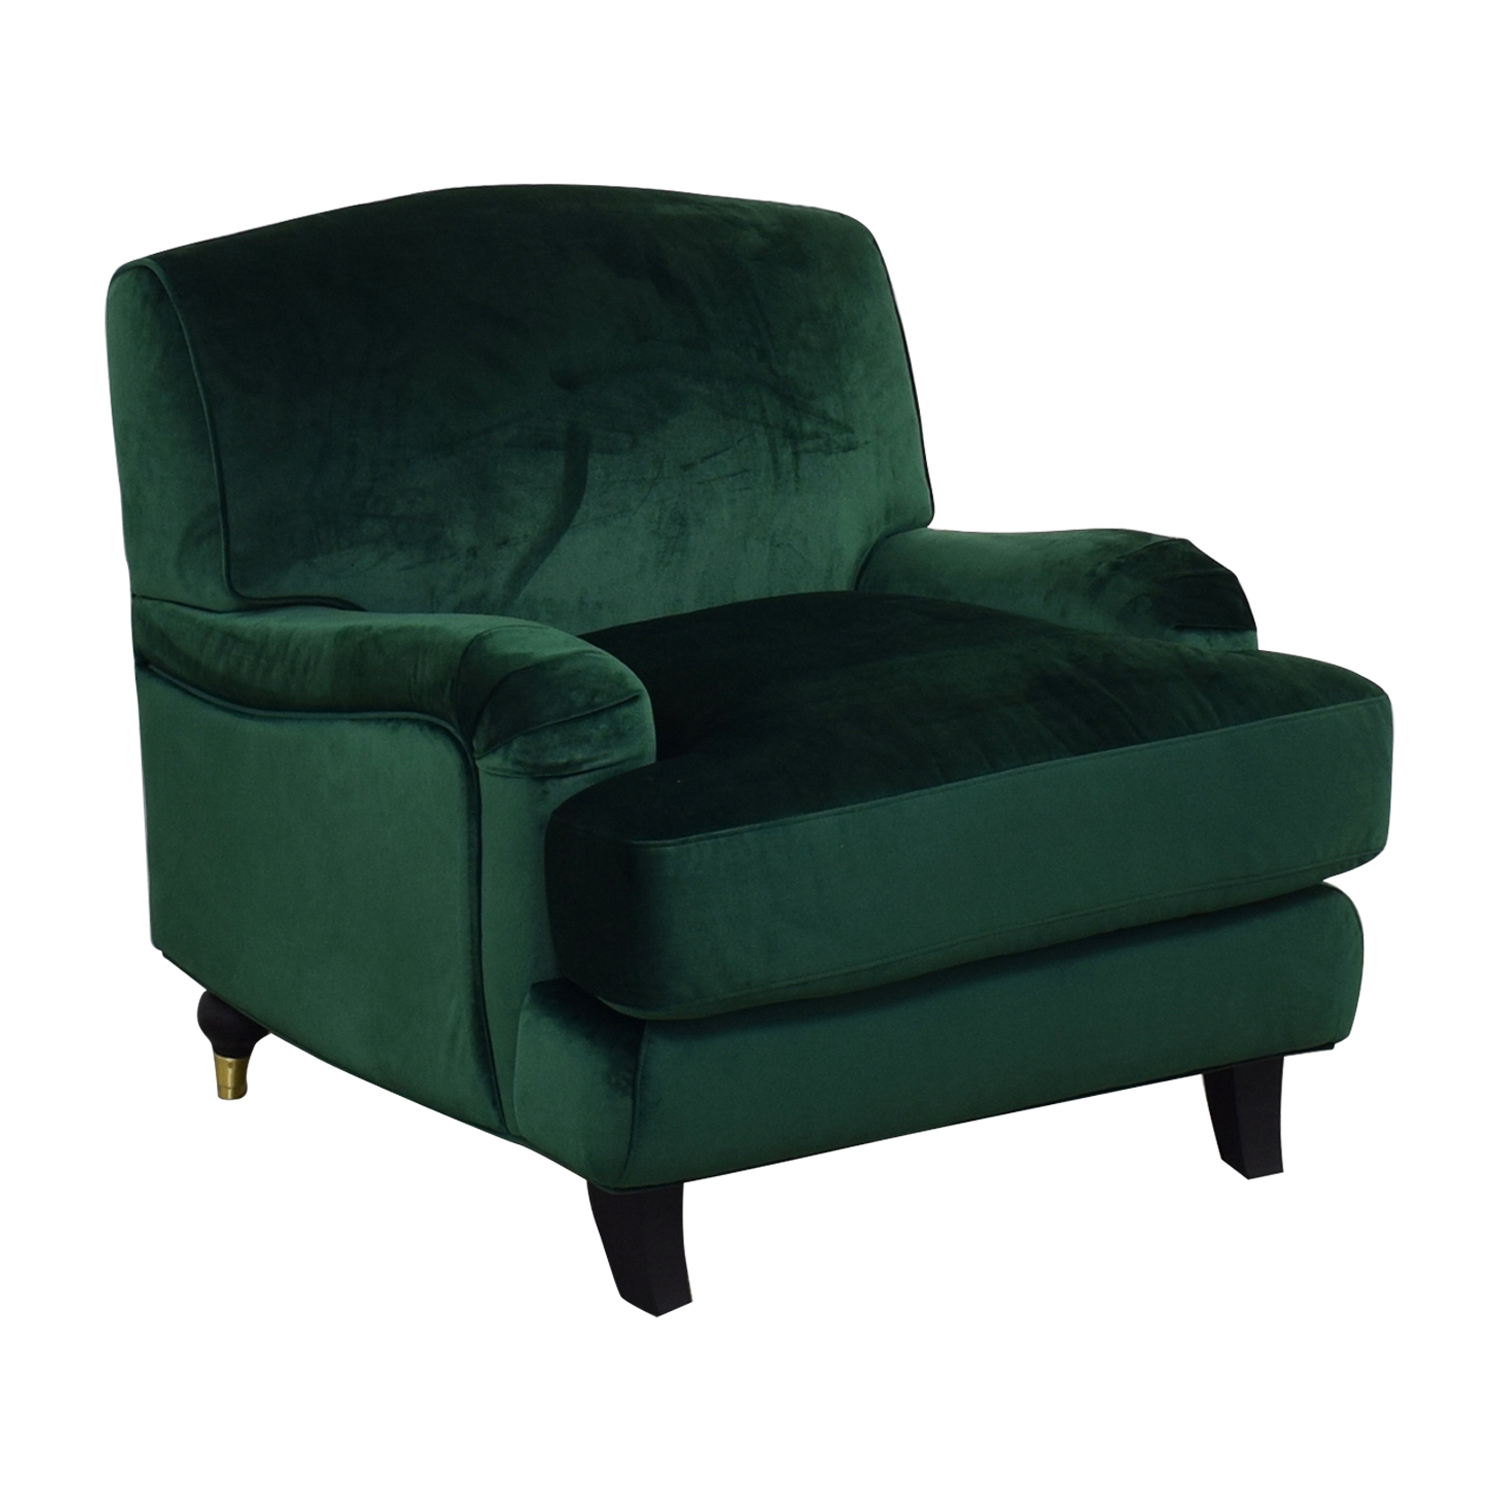 buy Rose Emerald Green Chair  Chairs